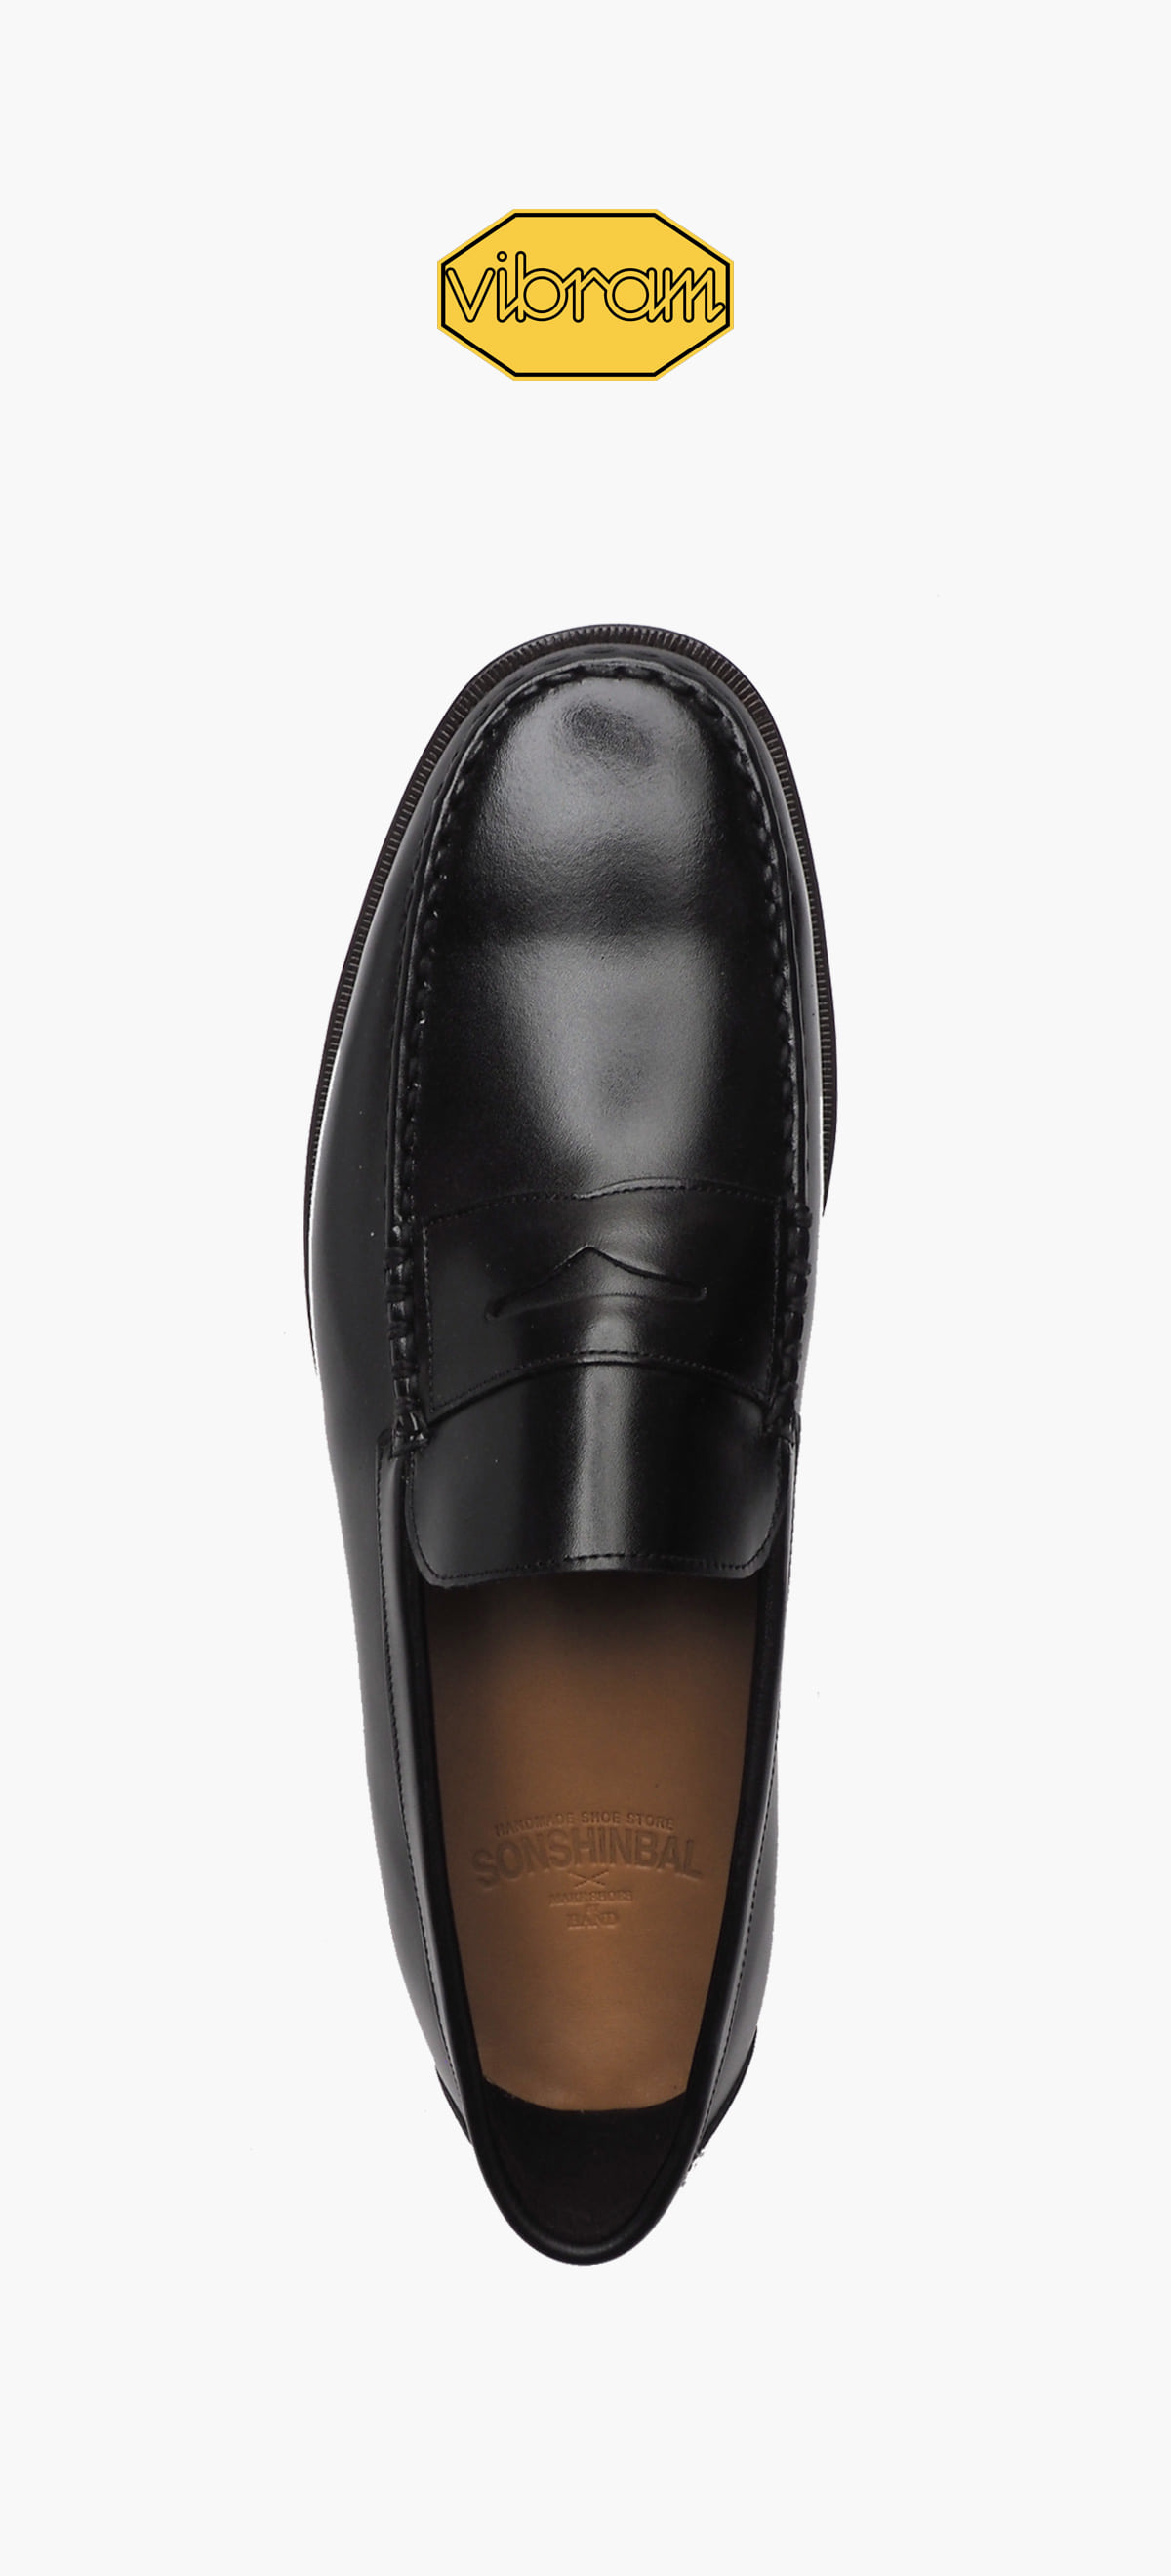 Penny Loafer 8012-05 Black Kip